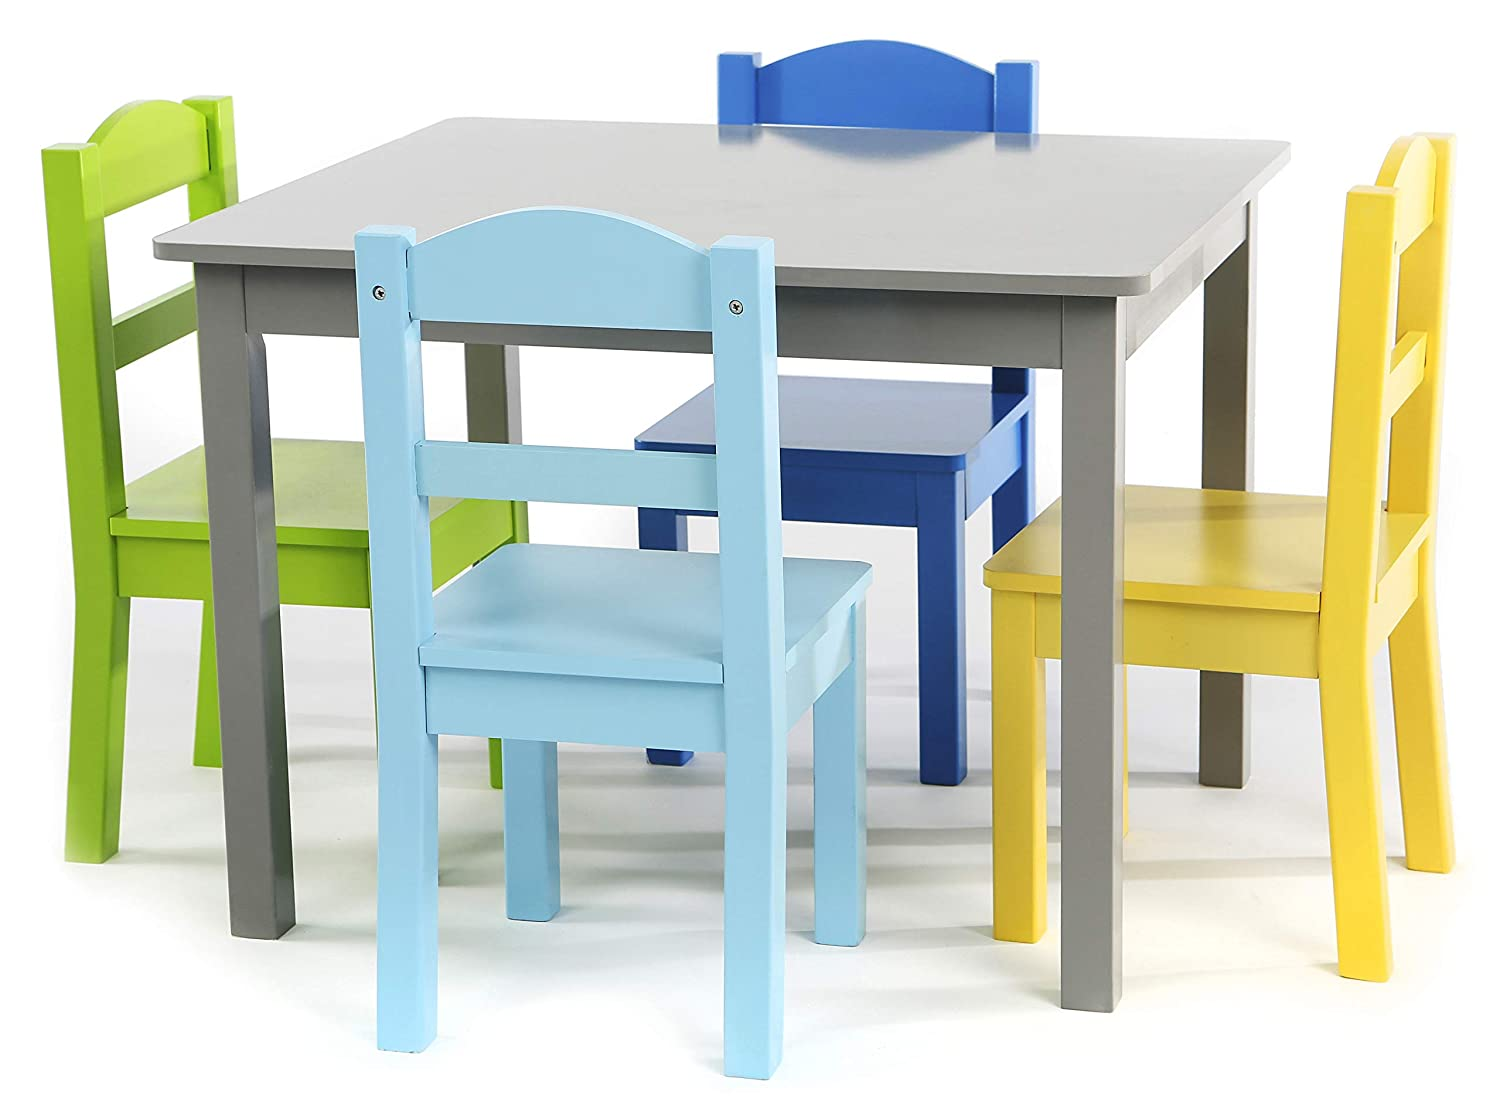 Tot Tutors TC451 Elements Collection Kids Wood Table & 4 Chair Set, Grey/Blue/Light Blue/Green/Yellow